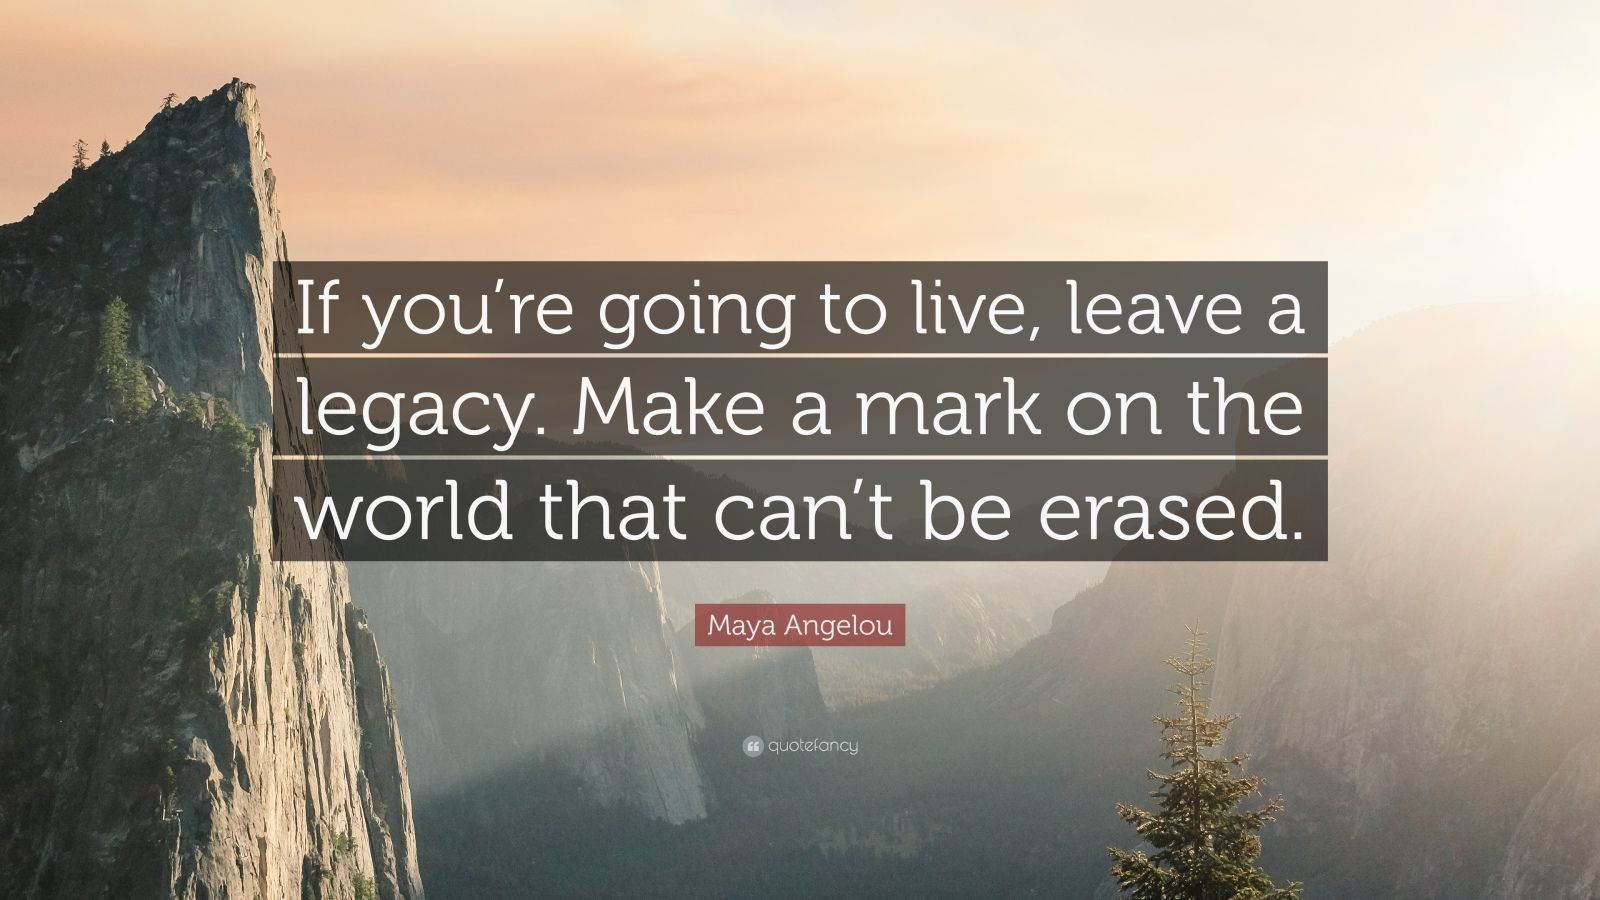 Maya Angelou Quote If You Re Going To Live Leave A Legacy Make A Mark On The World That Can